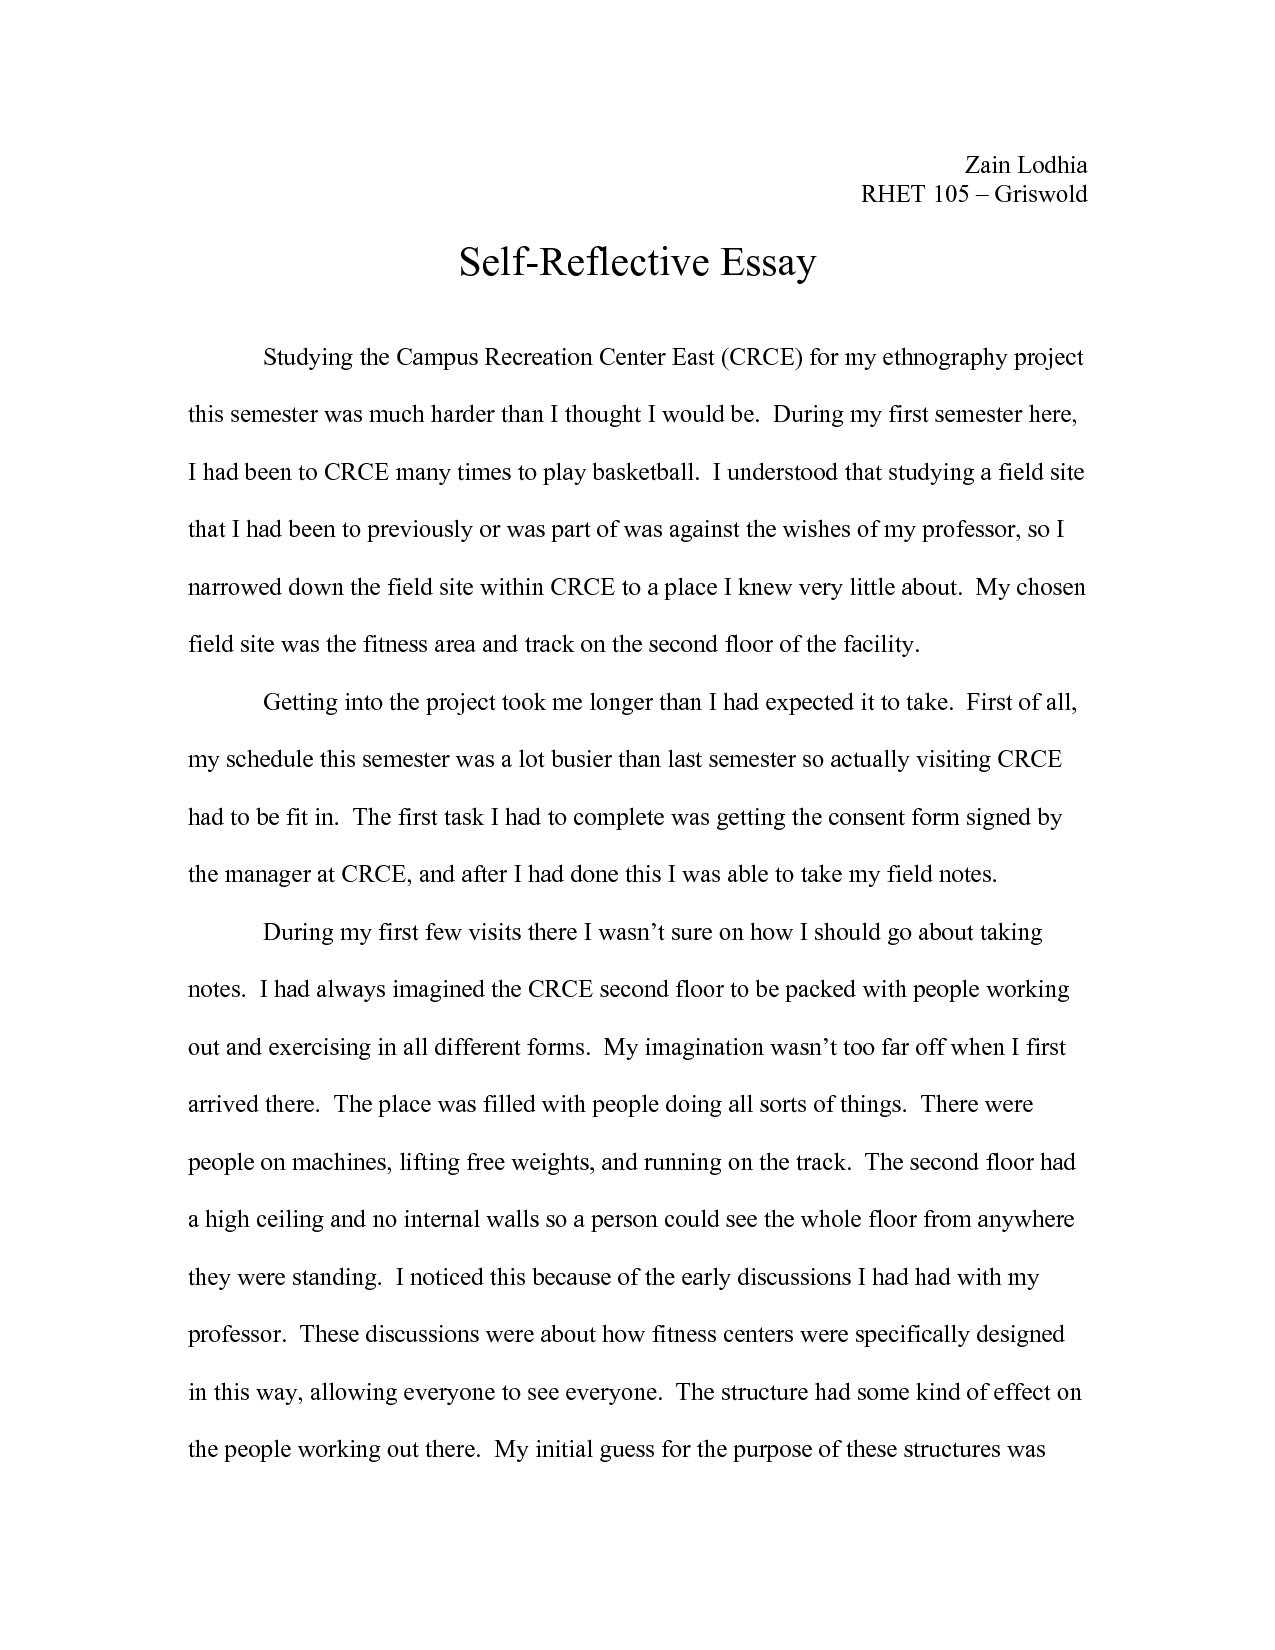 016 Qal0pwnf46 Conclusion Of An Essay Surprising About Racism Argumentative Outline Yourself Full